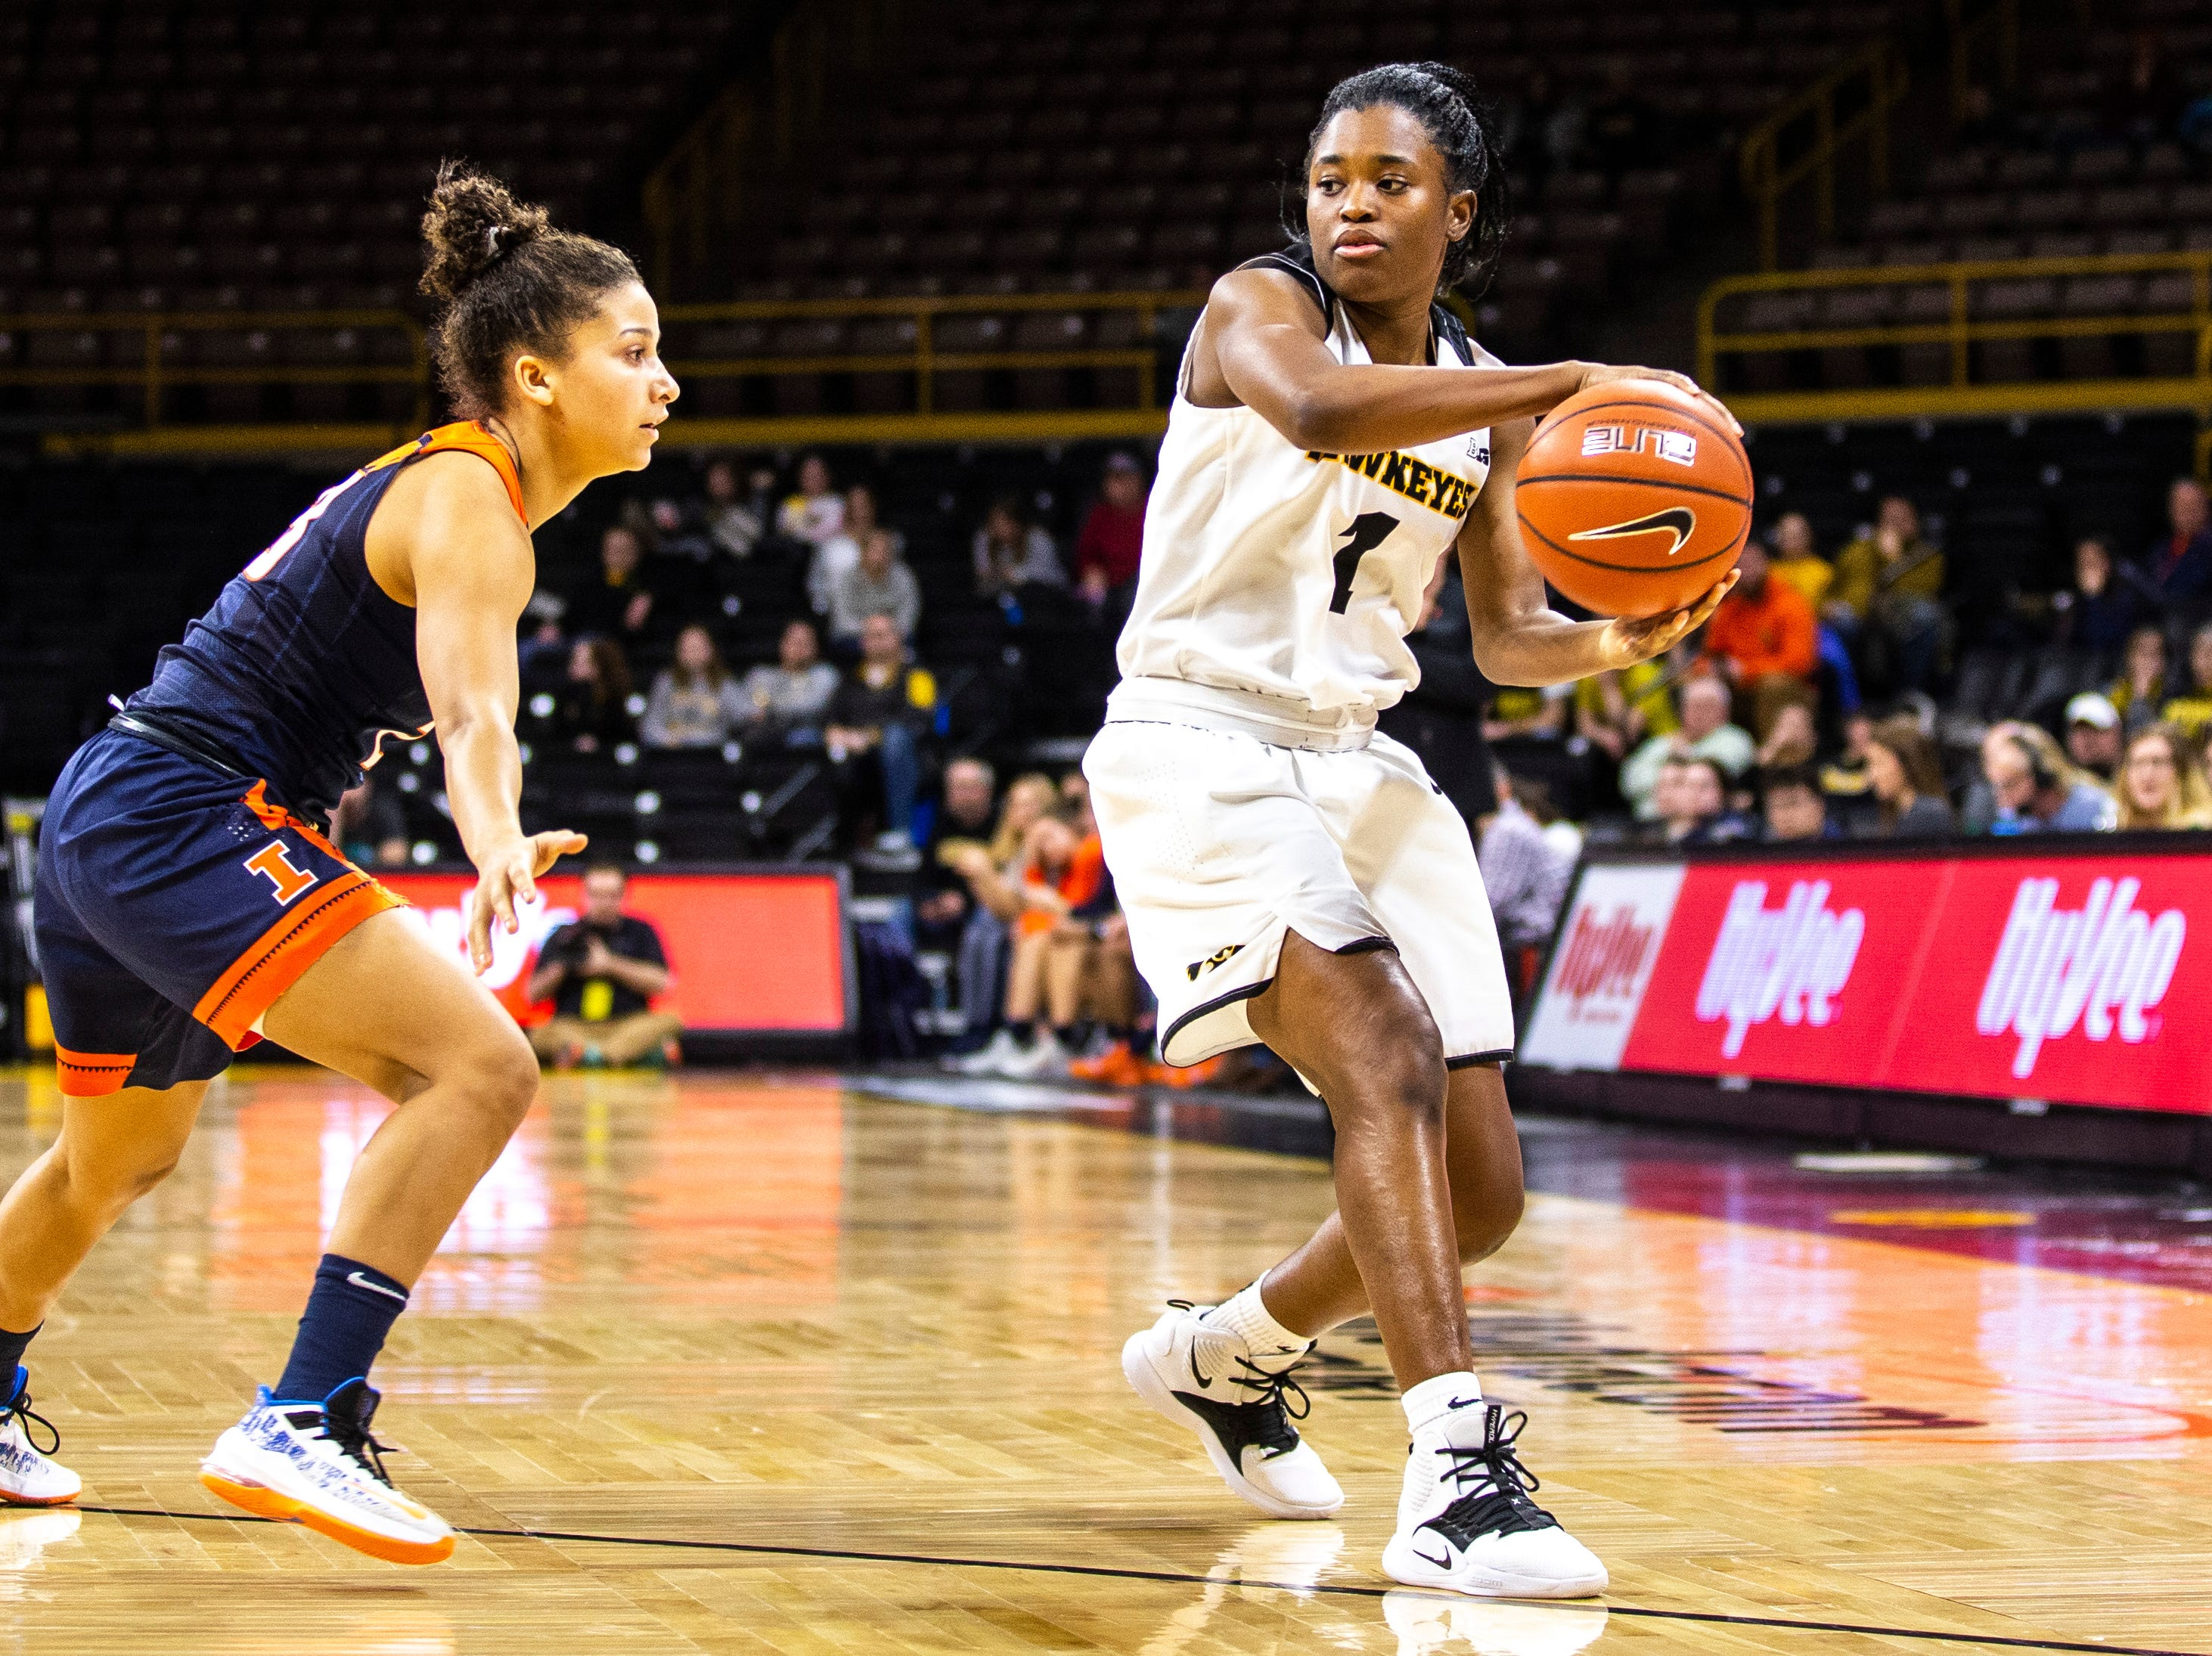 Iowa guard Tomi Taiwo (1) passes to teammate while Illinois guard Jaelyne Kirkpatrick, left, defends during a NCAA Big Ten Conference women's basketball game on Thursday, Feb. 14, 2019 at Carver-Hawkeye Arena in Iowa City, Iowa.